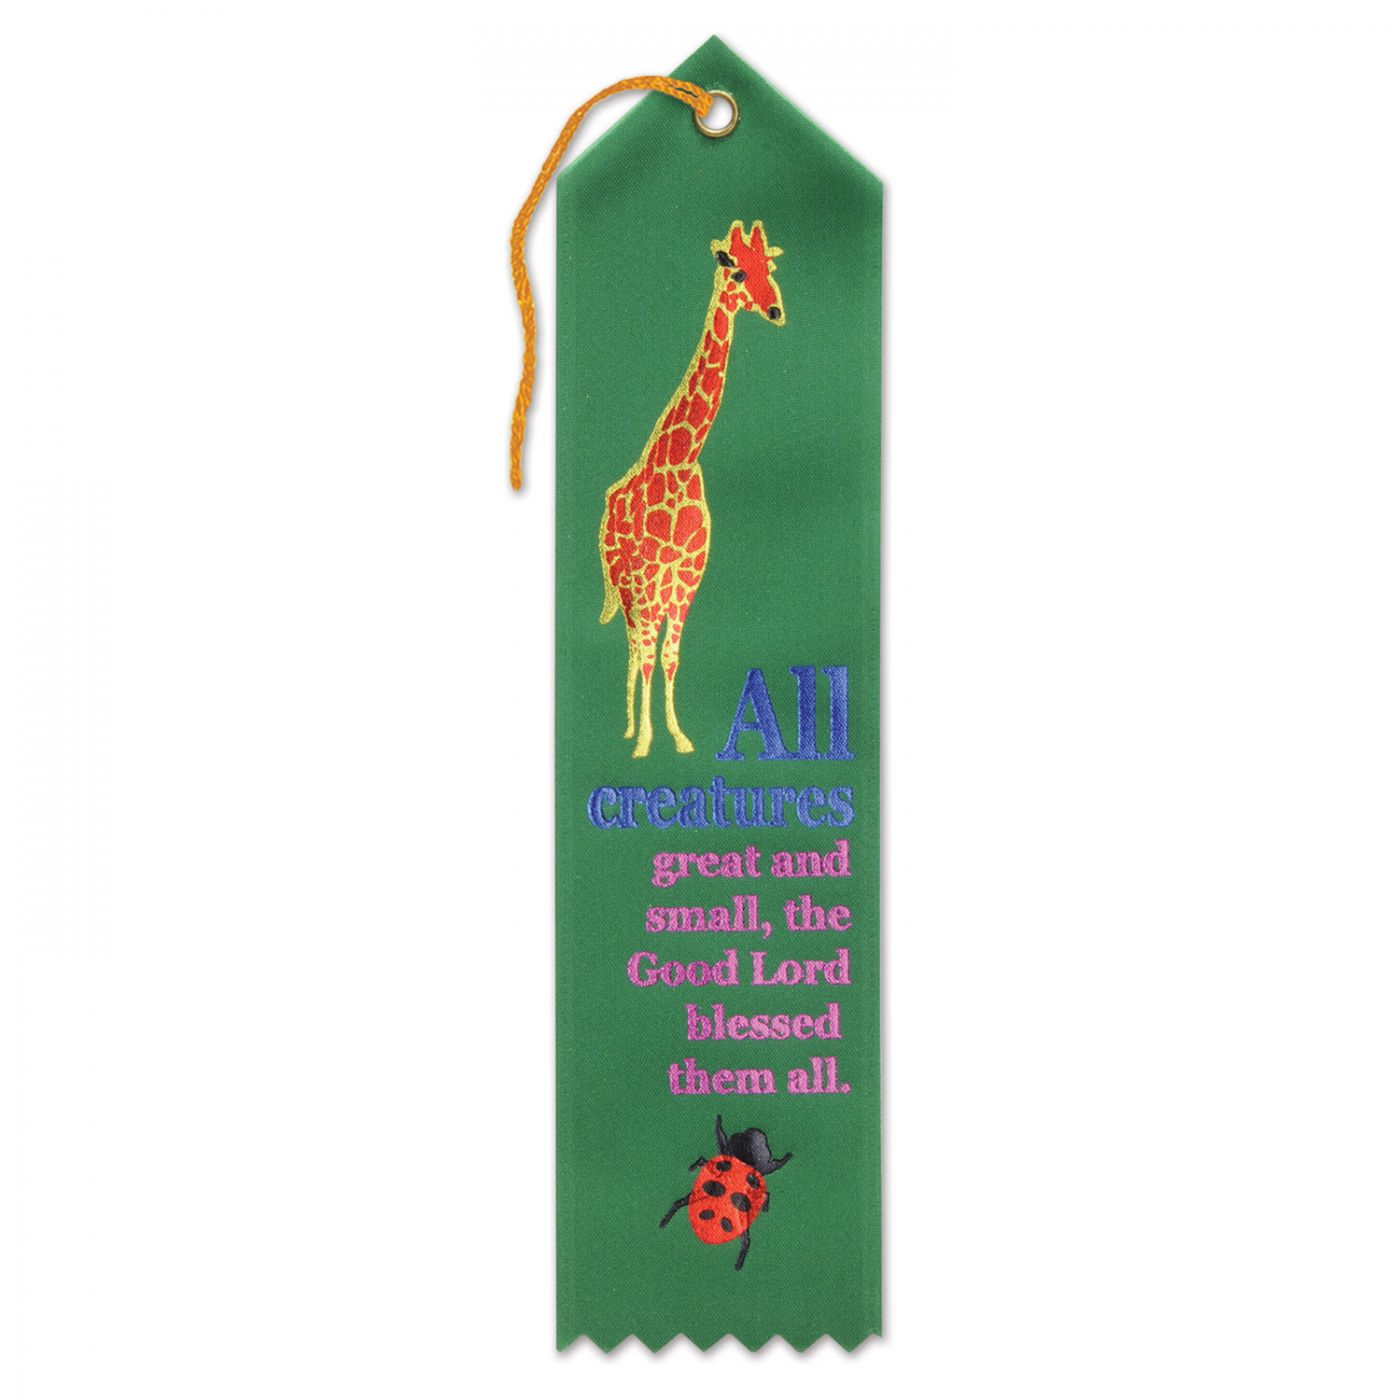 All Creatures Great And Small Ribbon (6) image